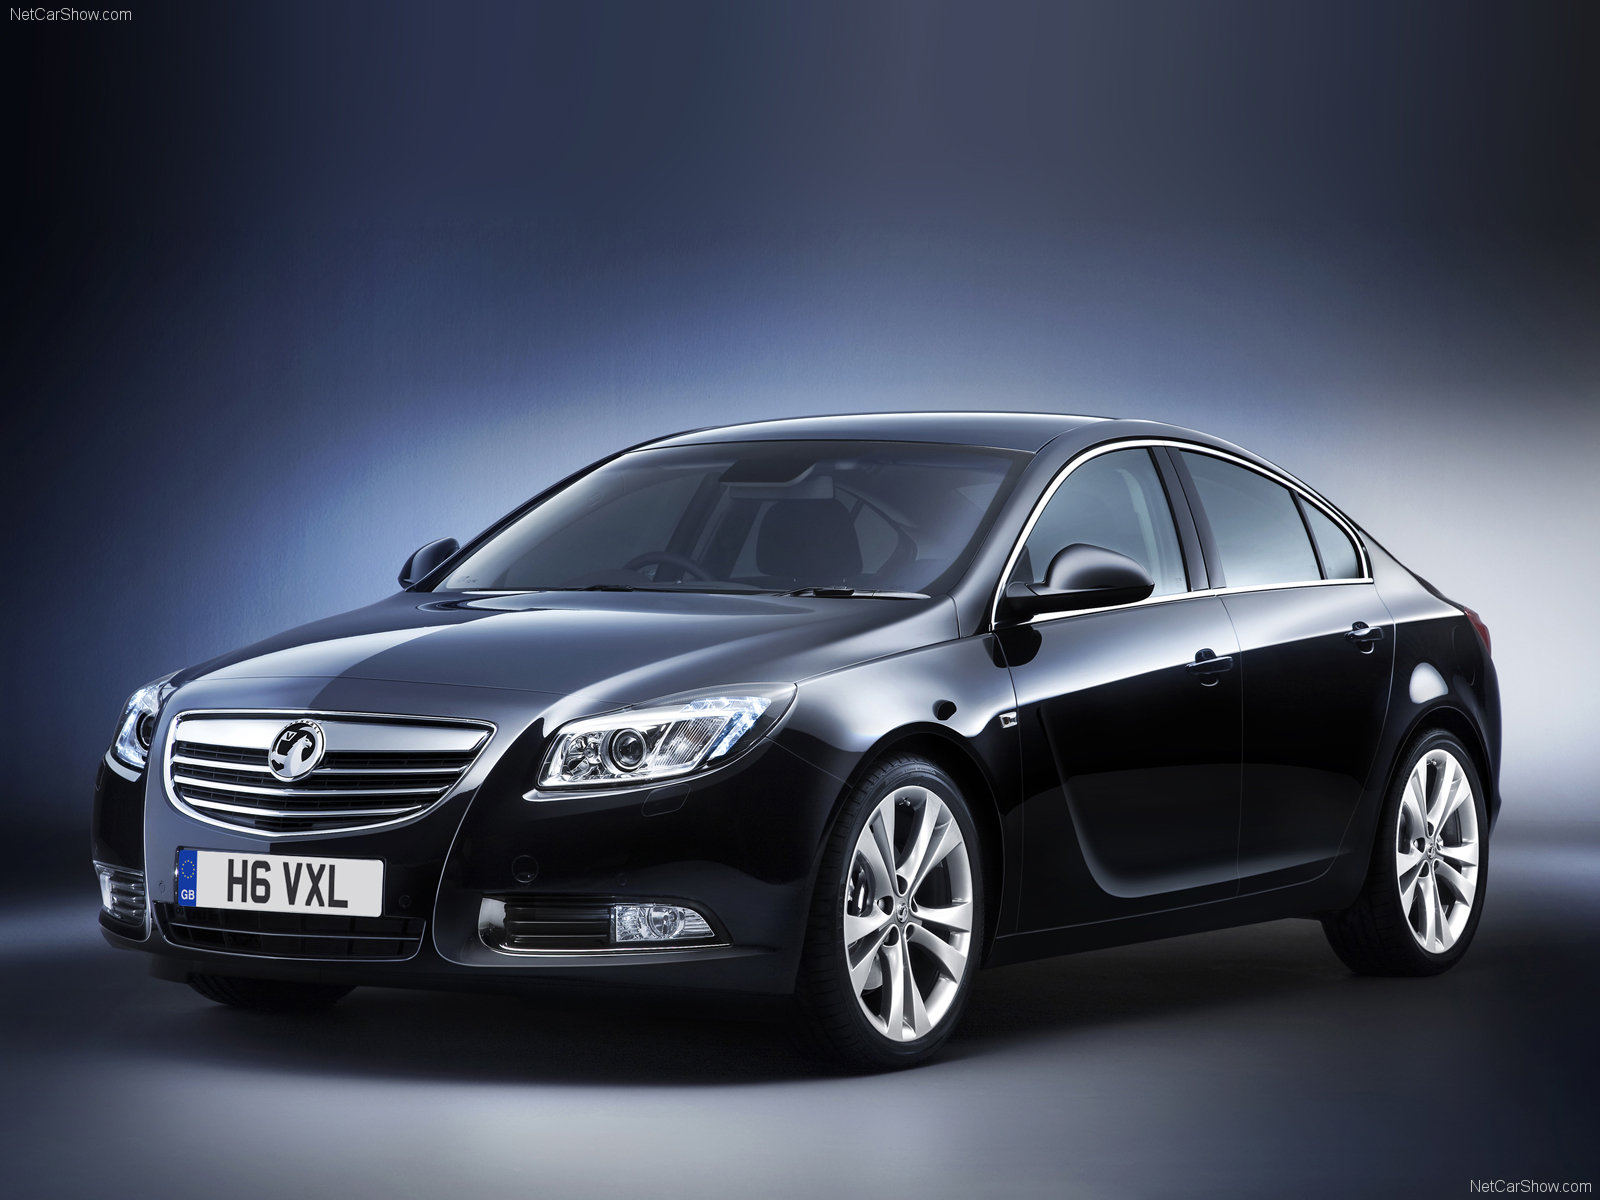 fake vauxhall insignia deine automeile im netz. Black Bedroom Furniture Sets. Home Design Ideas